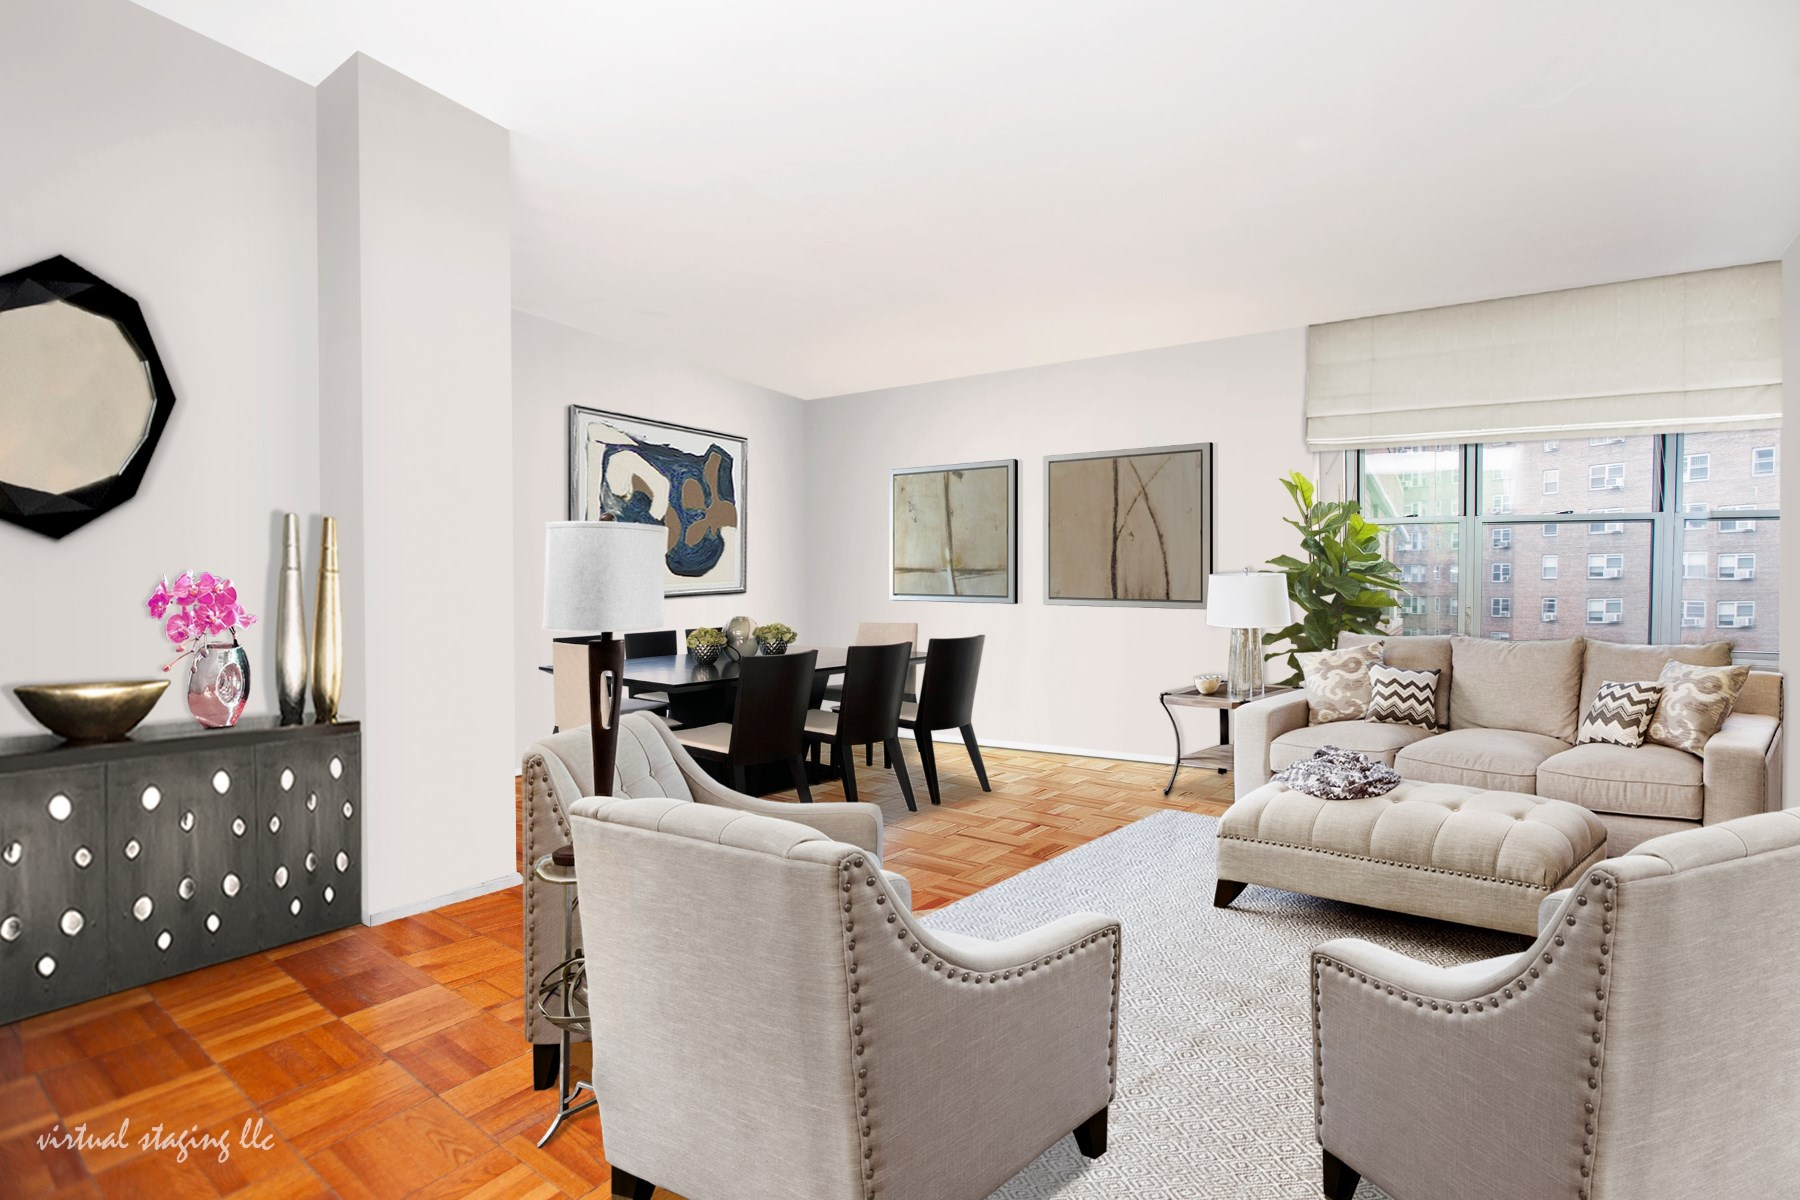 Co-op for Sale at 457 FDR drive, Apt. A 1502 457 Fdr Drive Apt A-1502 Lower East Side, New York, New York, 10002 United States